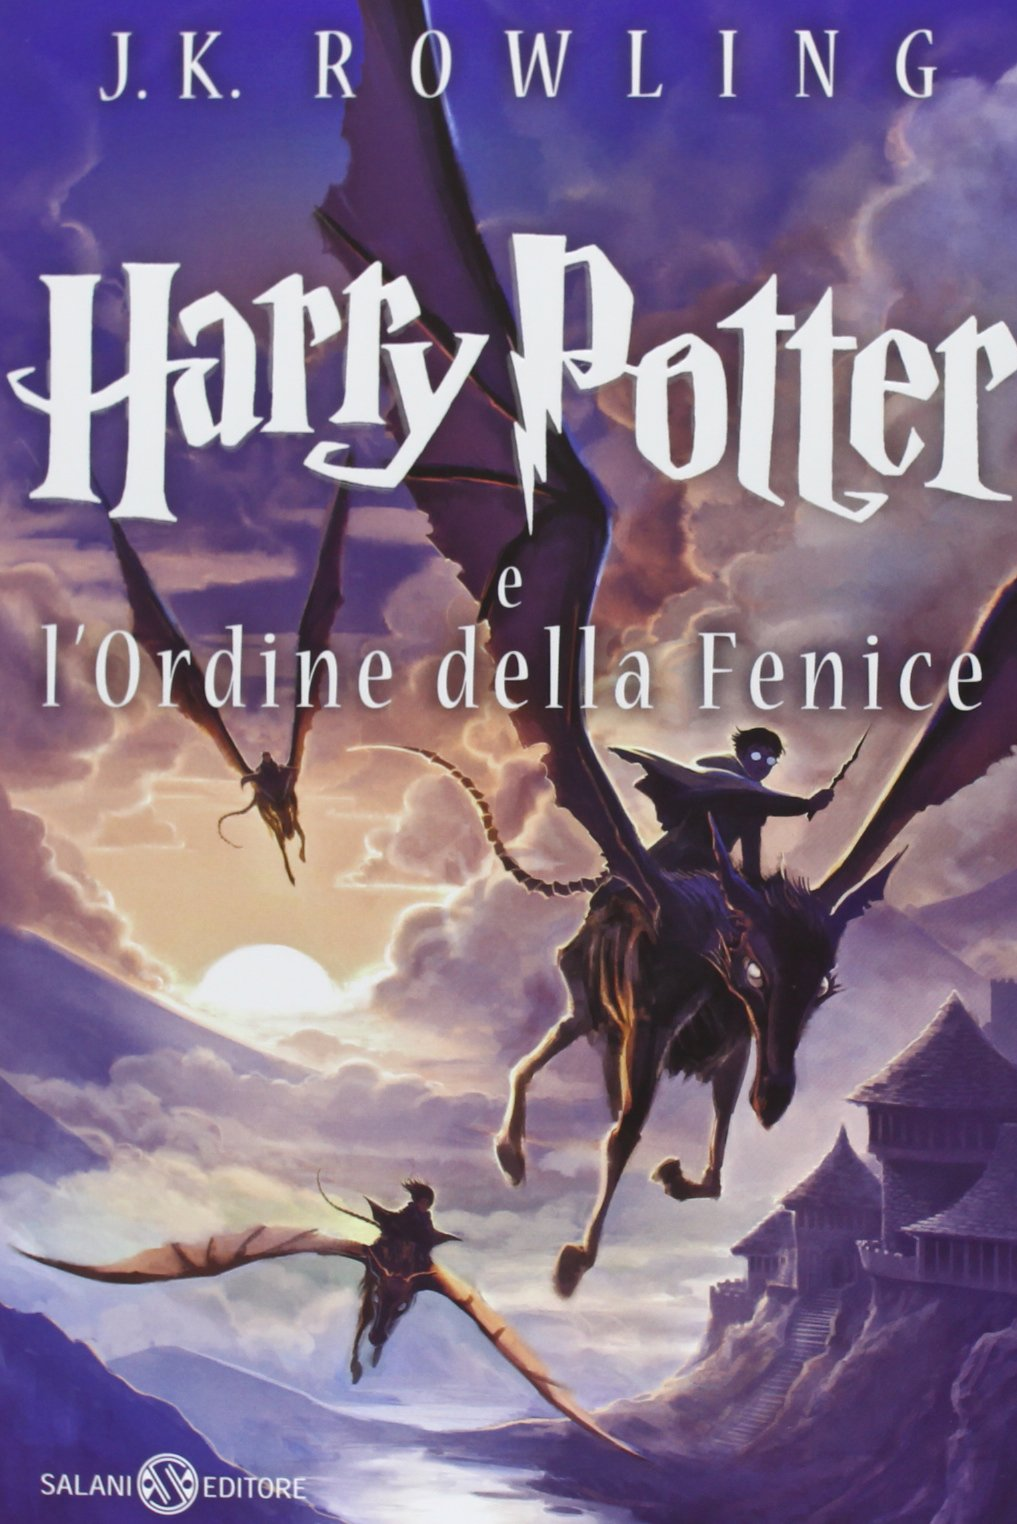 Harry Potter and the Order of the Phoenix Castle Ediotion 2013 – Italian Cover